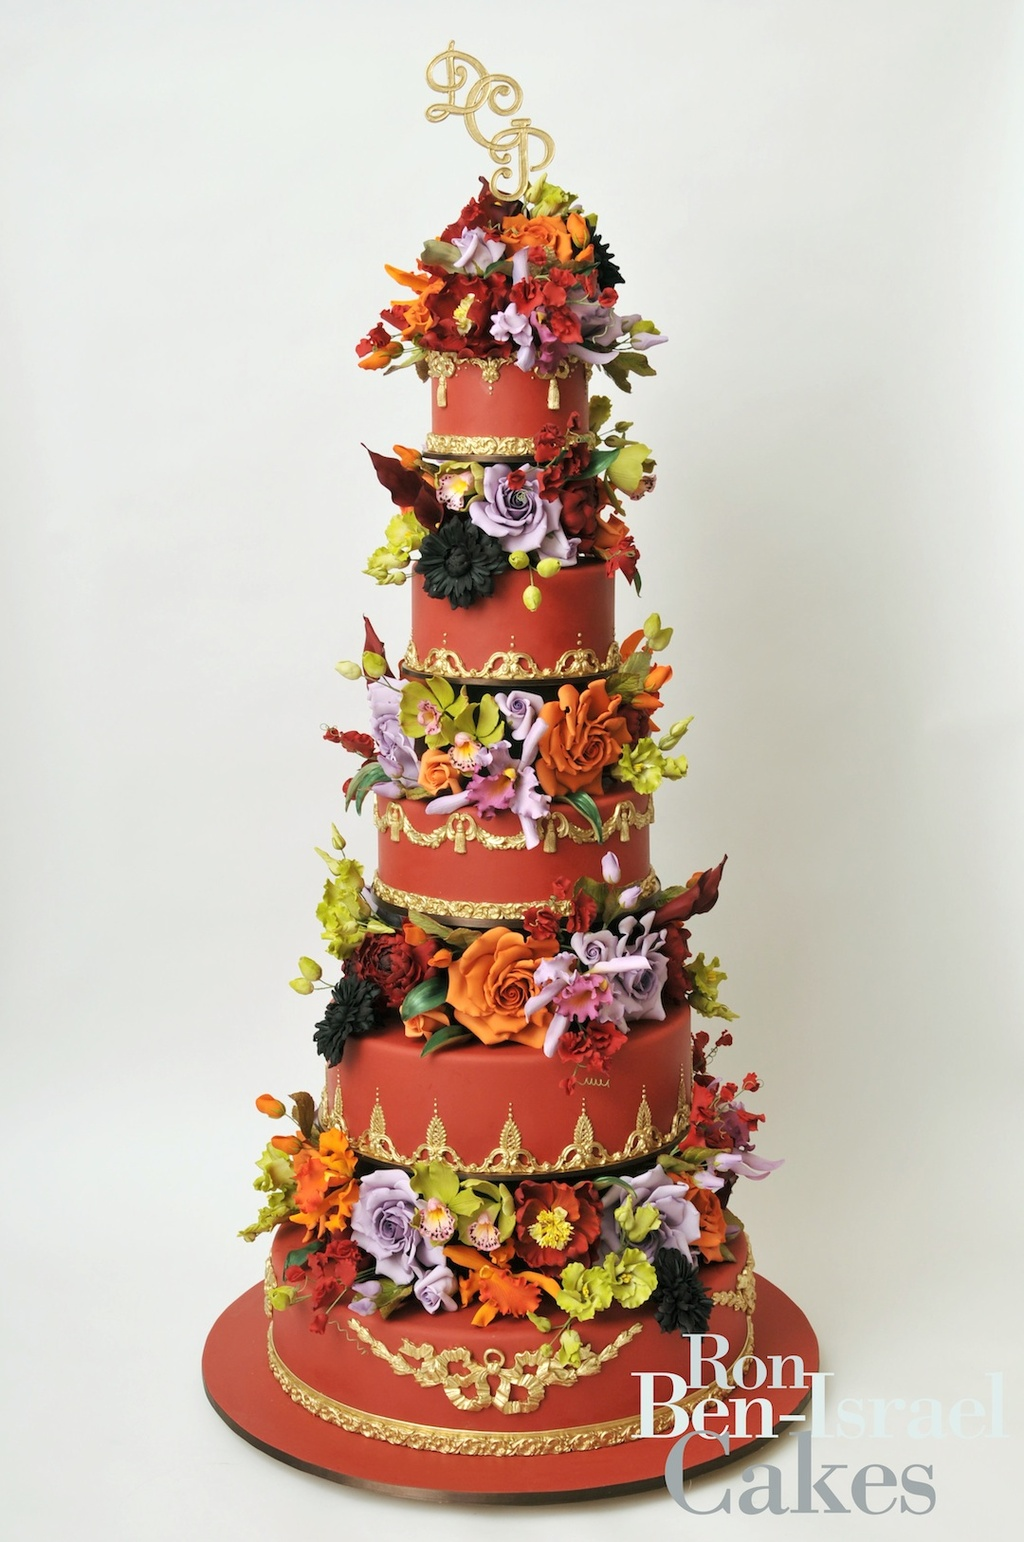 Wedding-cake-inspiration-ron-ben-isreal-wedding-cakes-terra-cotta-with-colorful-blooms.original.full